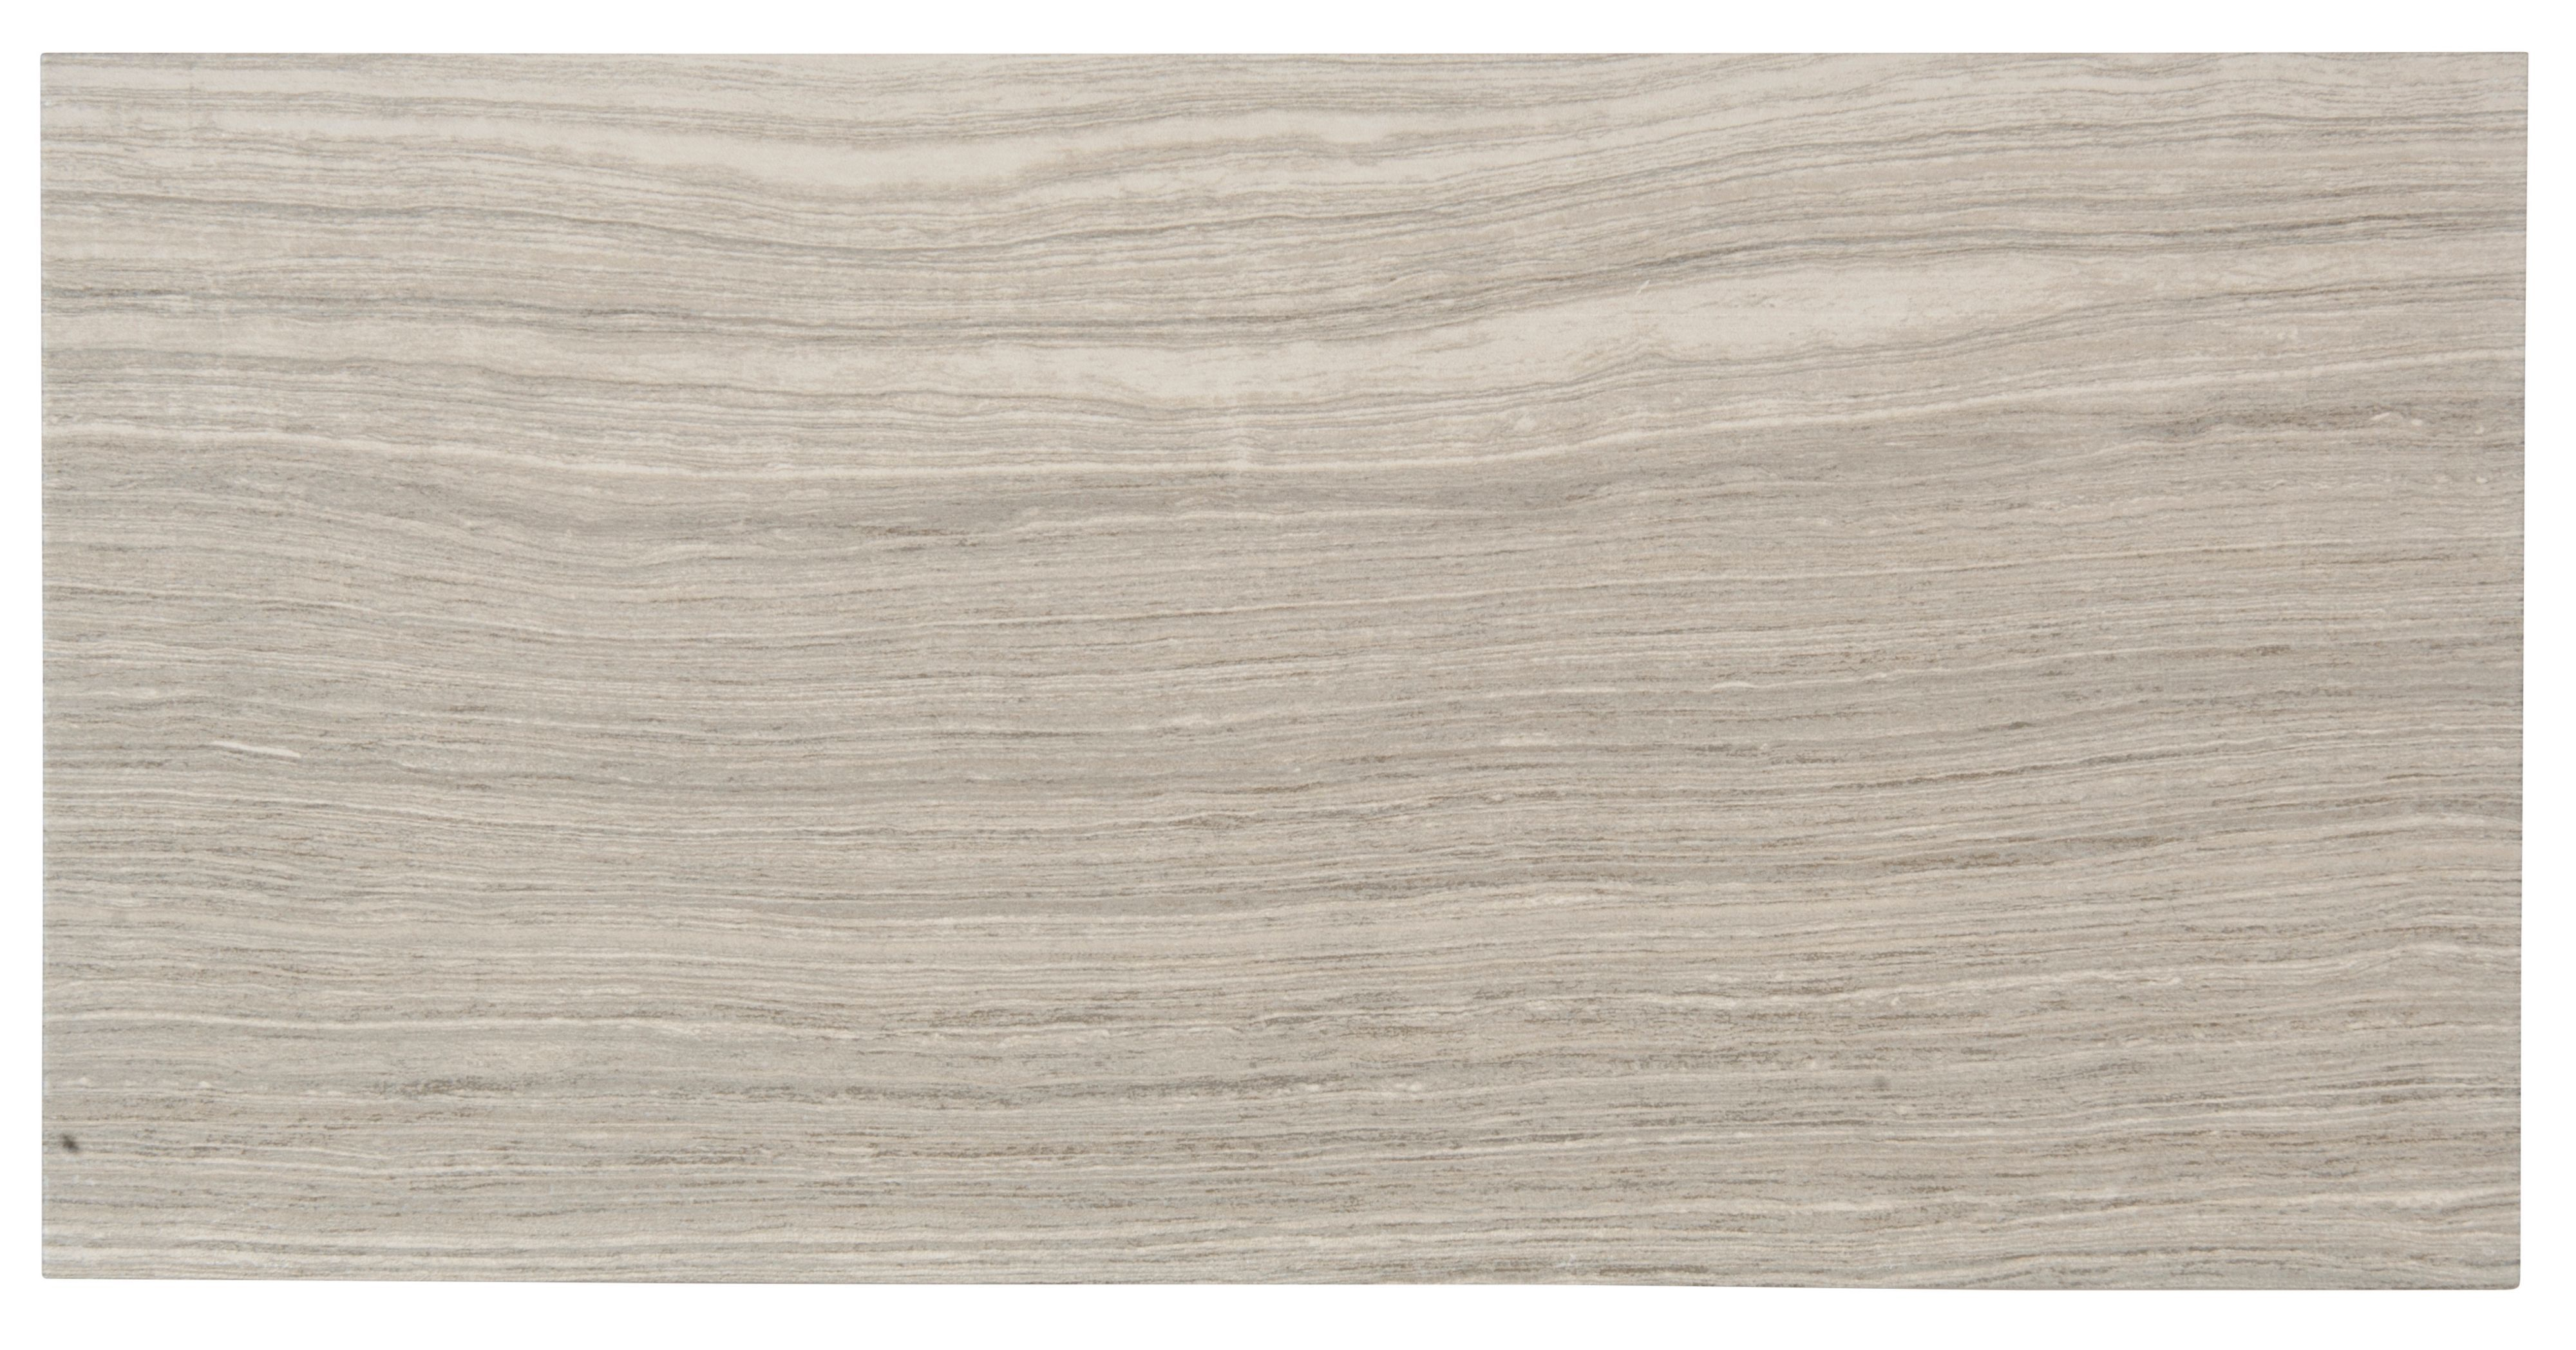 bolina grey porcelain wall floor tile pack of 6 l 600mm w 300mm